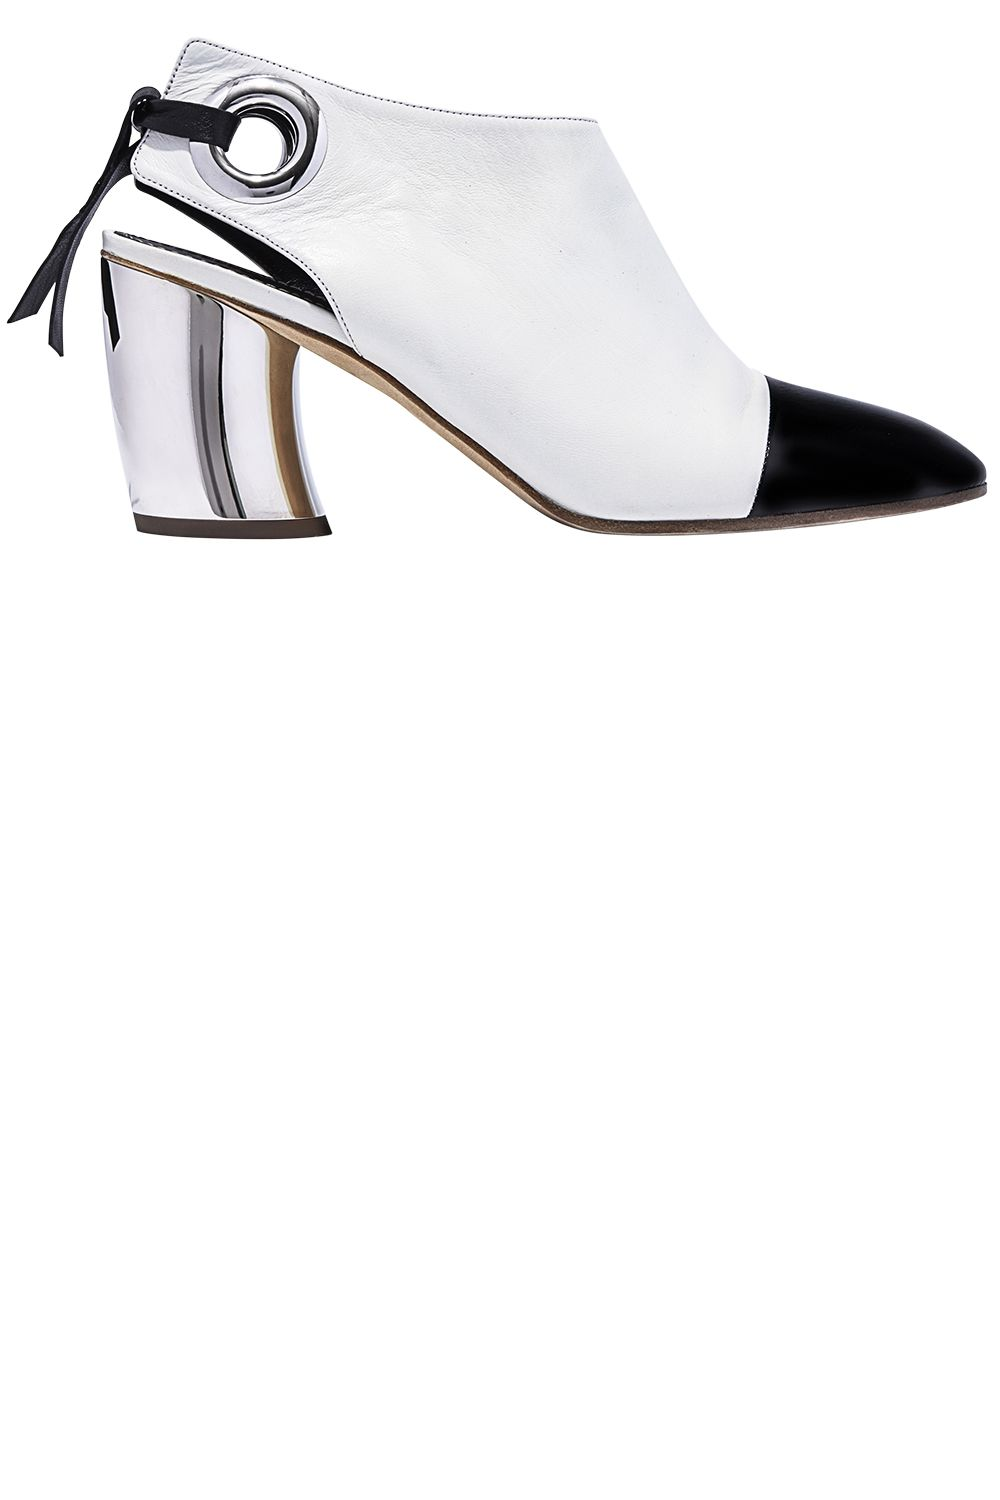 """<p><strong data-redactor-tag=""""strong"""">Proenza Schouler</strong>shoes, $860,<a href=""""https://www.proenzaschouler.com/"""" target=""""_blank"""">proenzaschouler.com</a>.<span class=""""redactor-invisible-space"""" data-verified=""""redactor"""" data-redactor-tag=""""span"""" data-redactor-class=""""redactor-invisible-space""""></span></p>"""